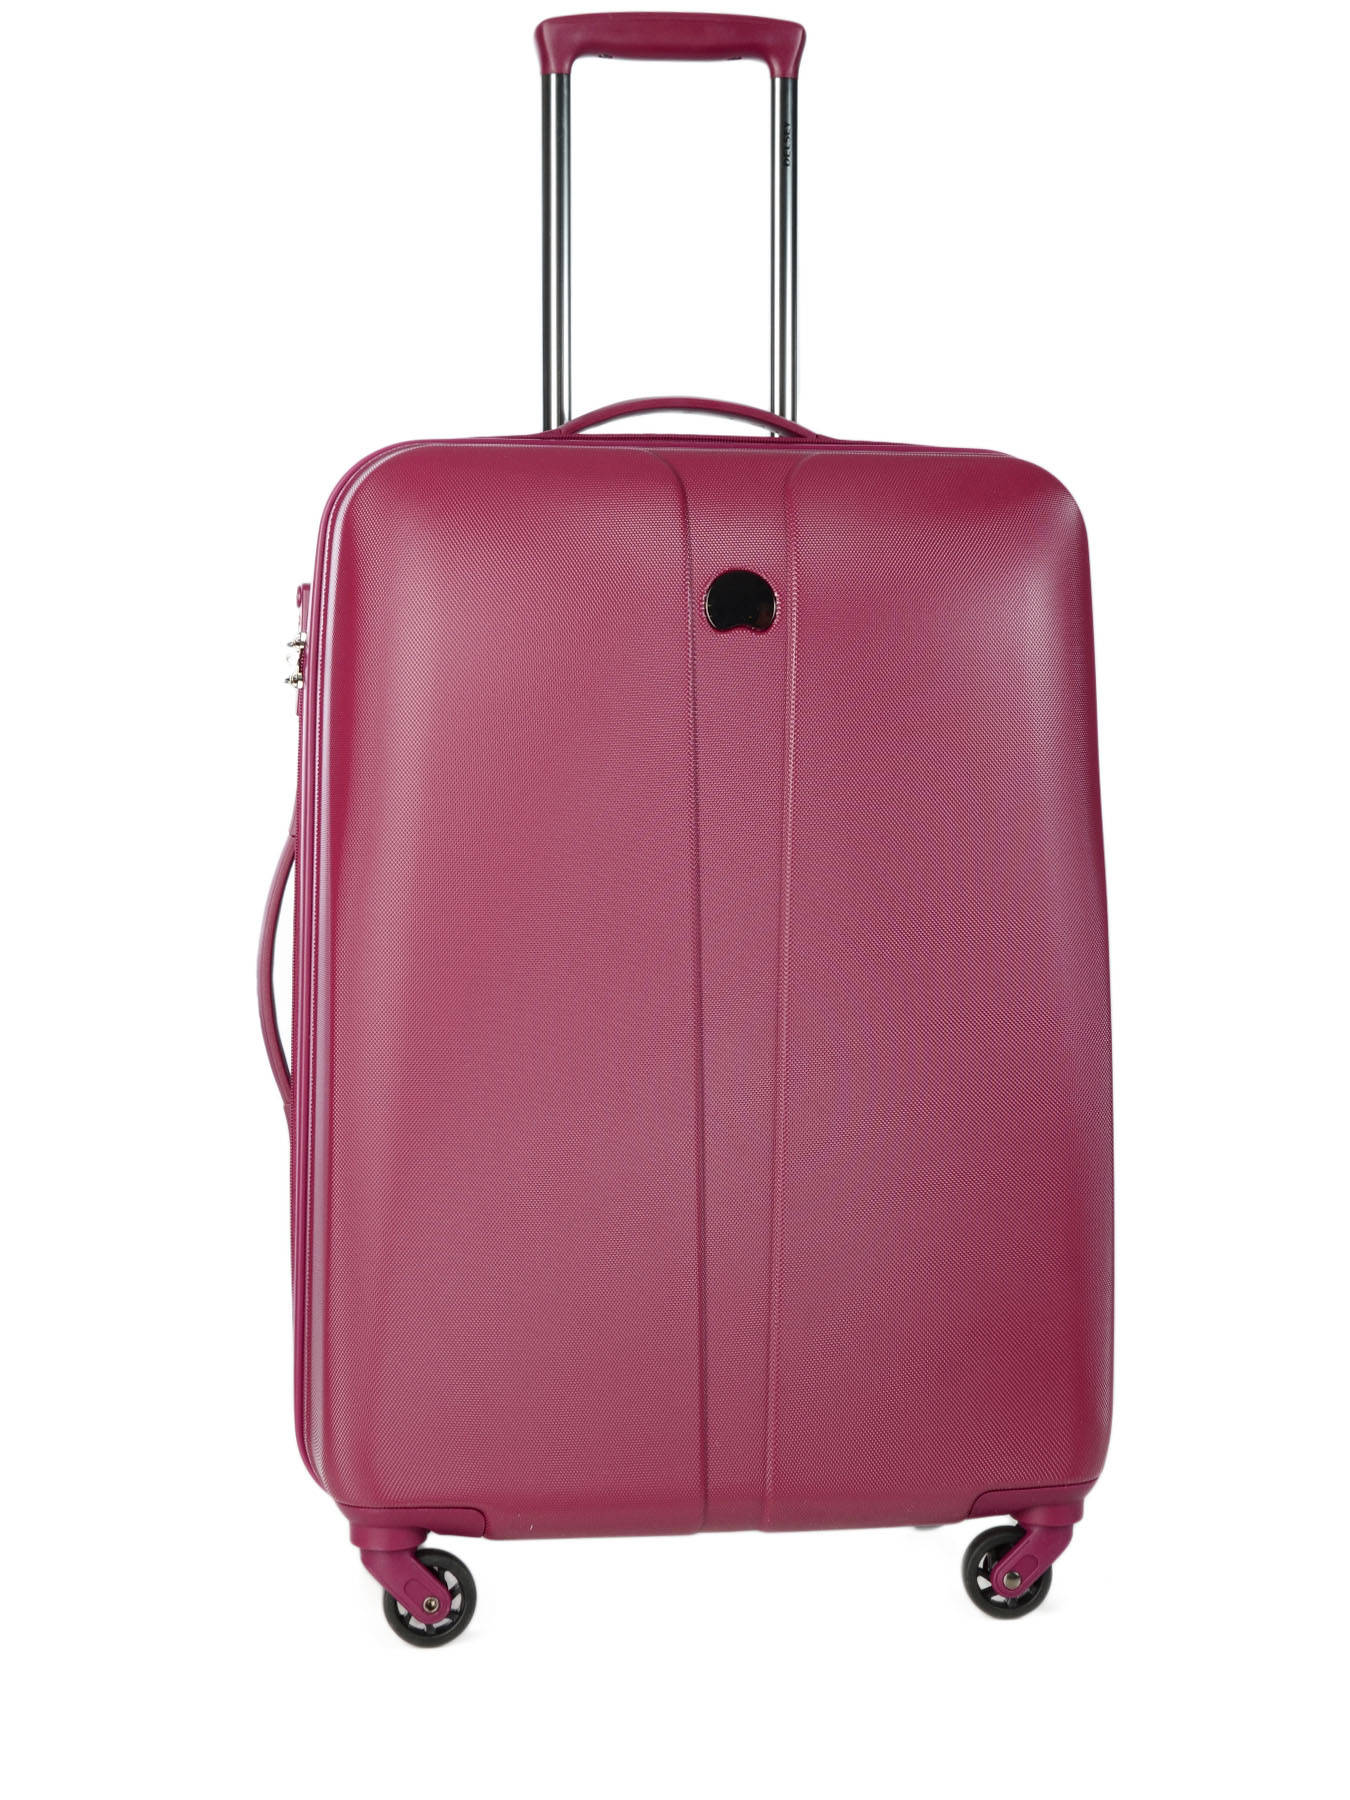 Delsey Hardside luggage - Best prices